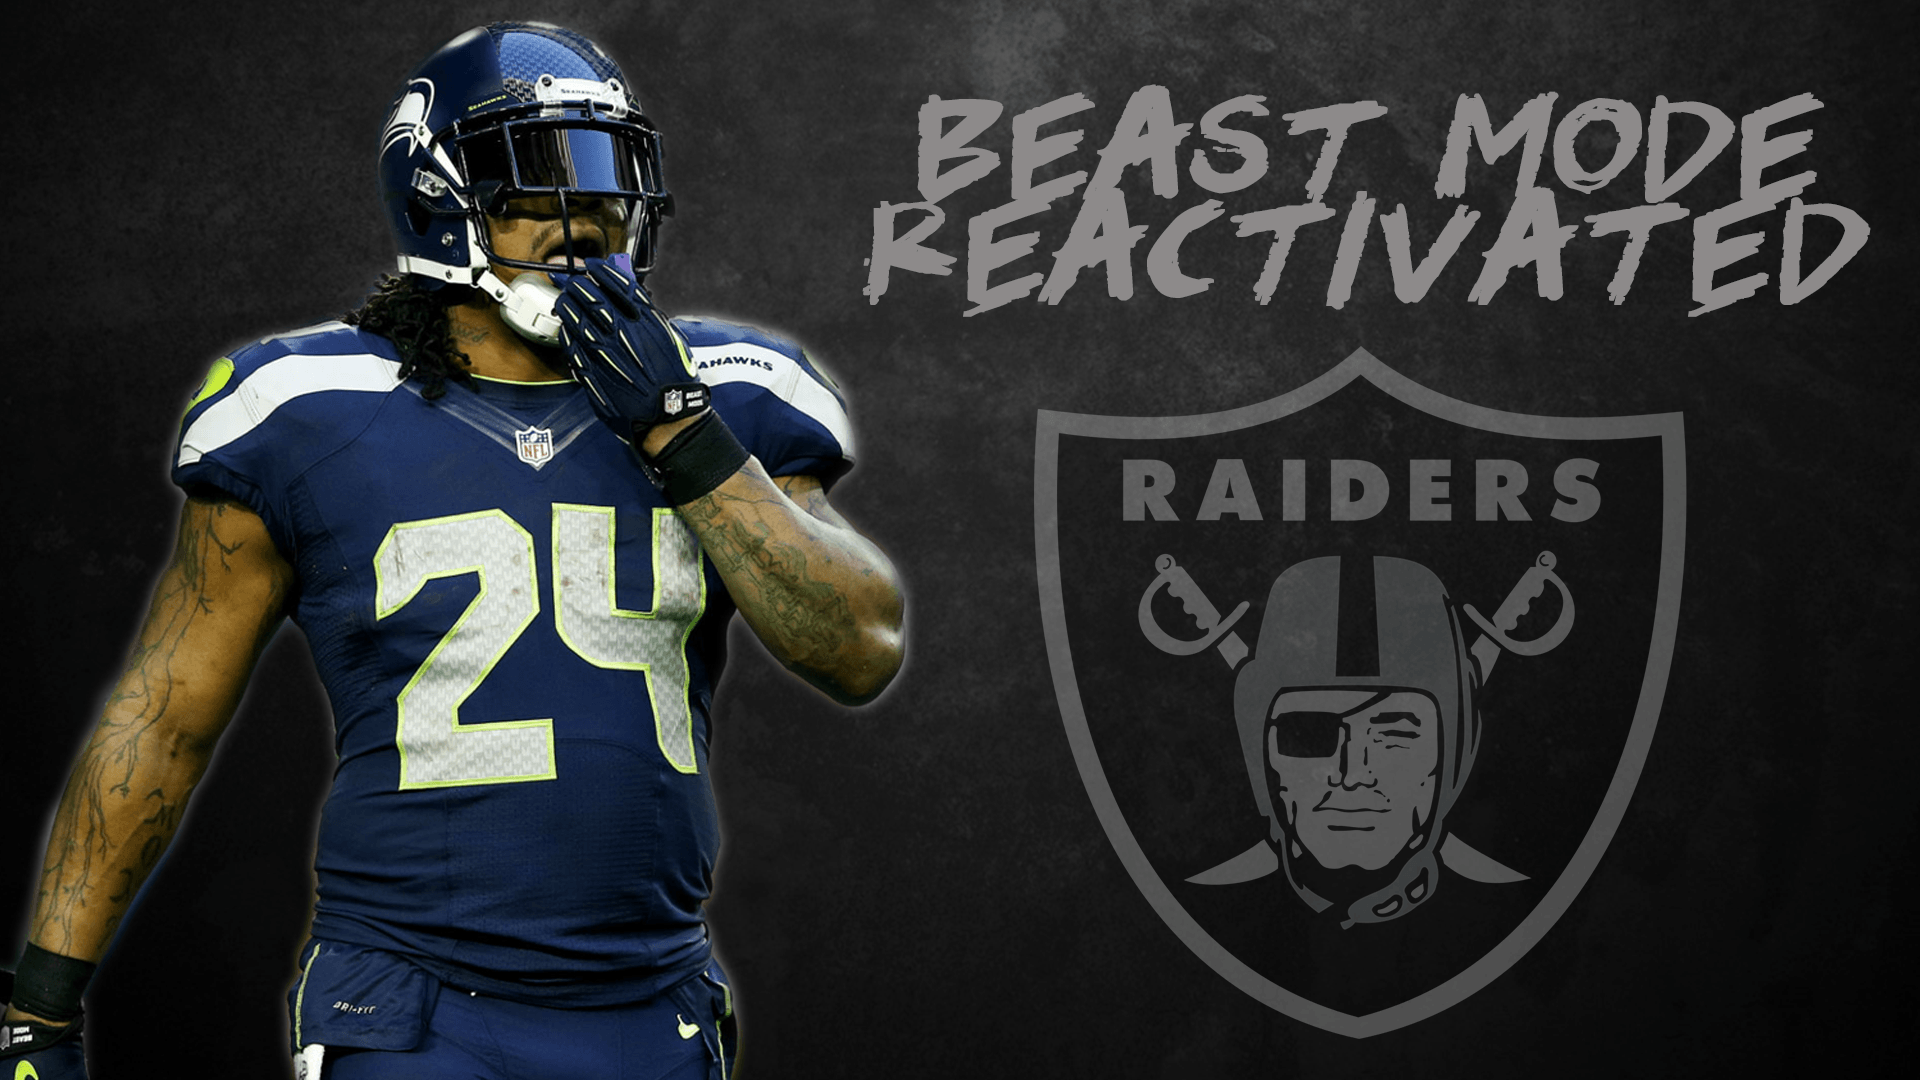 Marshawn Lynch Beast mode Hd wallpaper for download